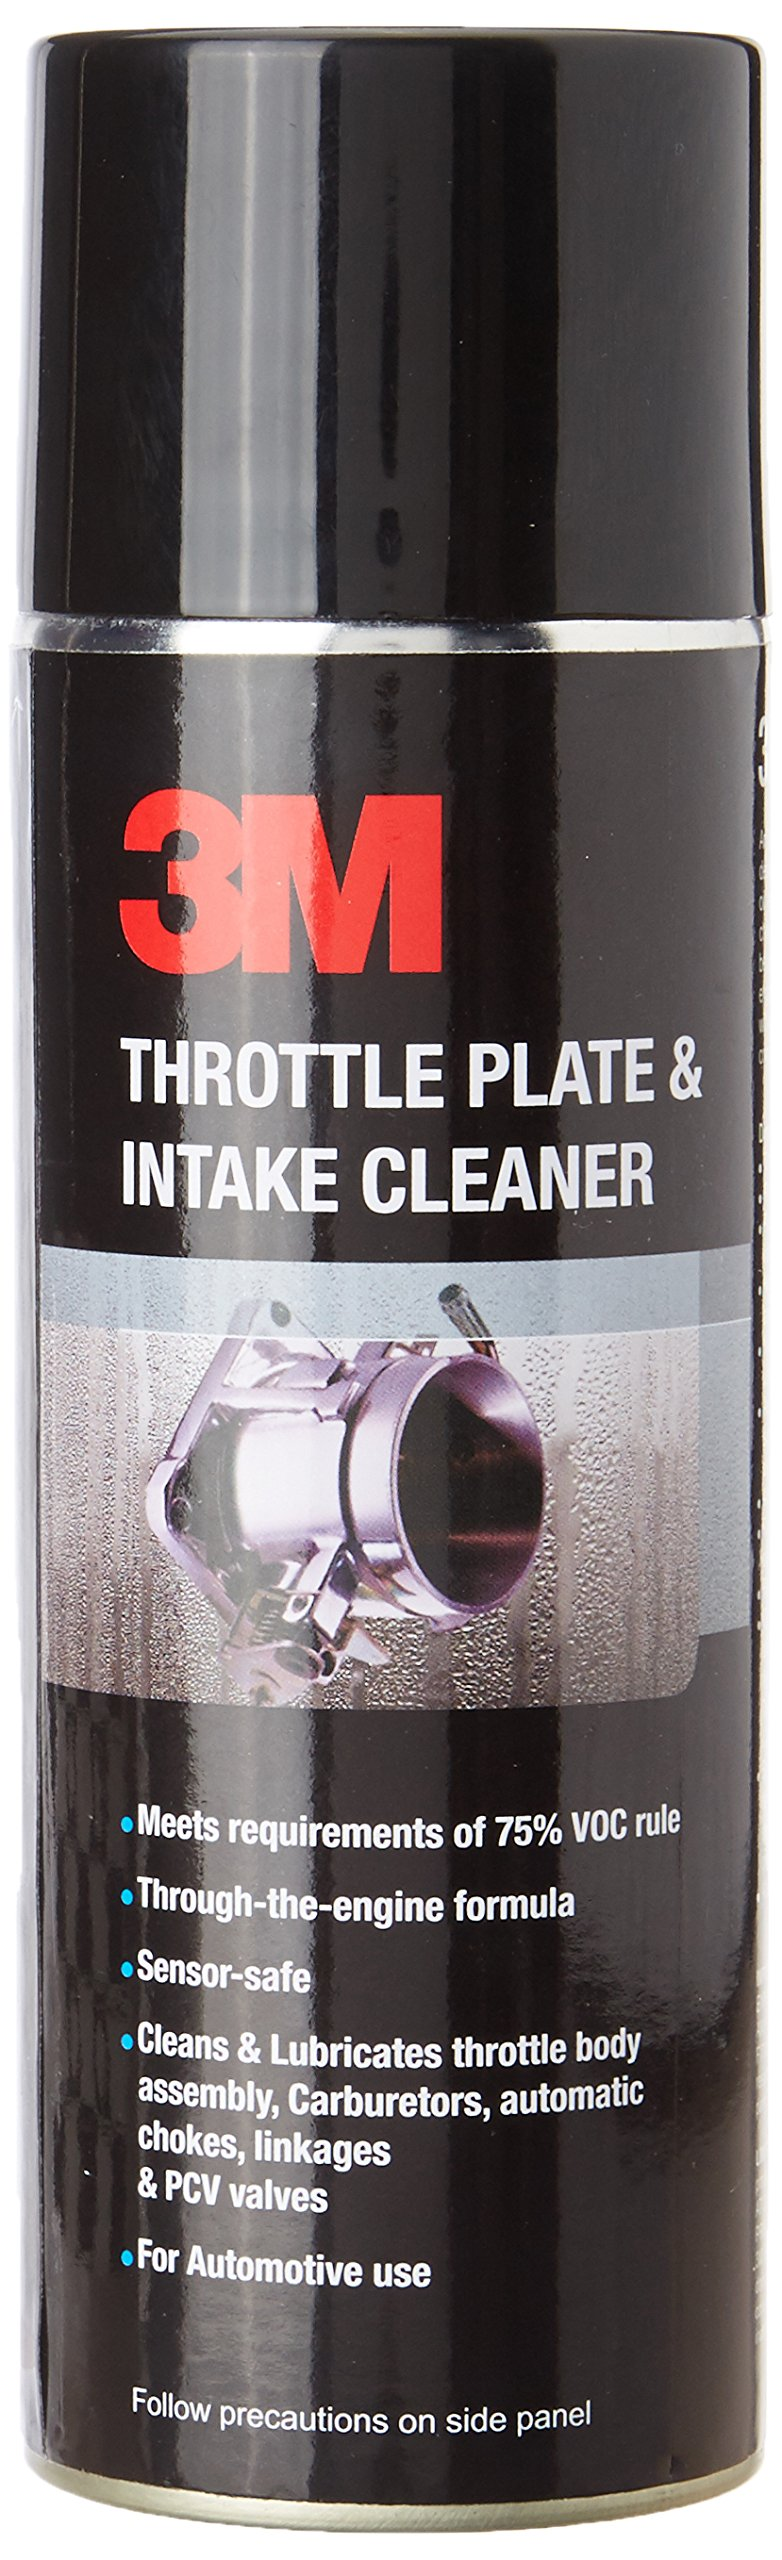 3M Throttle Plate & Intake Cleaner (325 g, Amber) product image